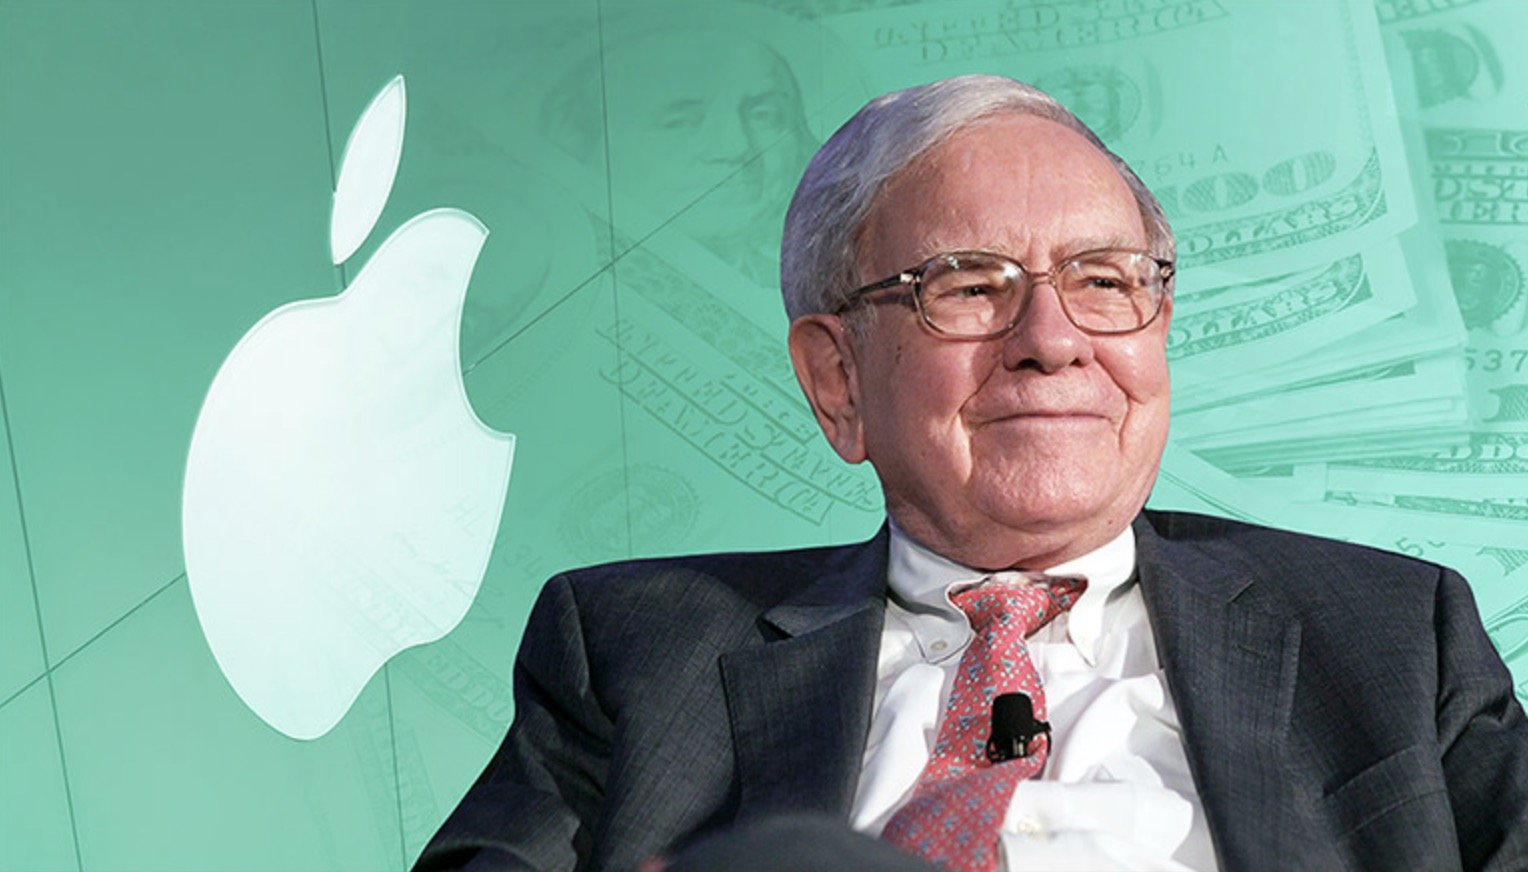 Buffett: Tim Cook spent hours teaching him iPhone 11